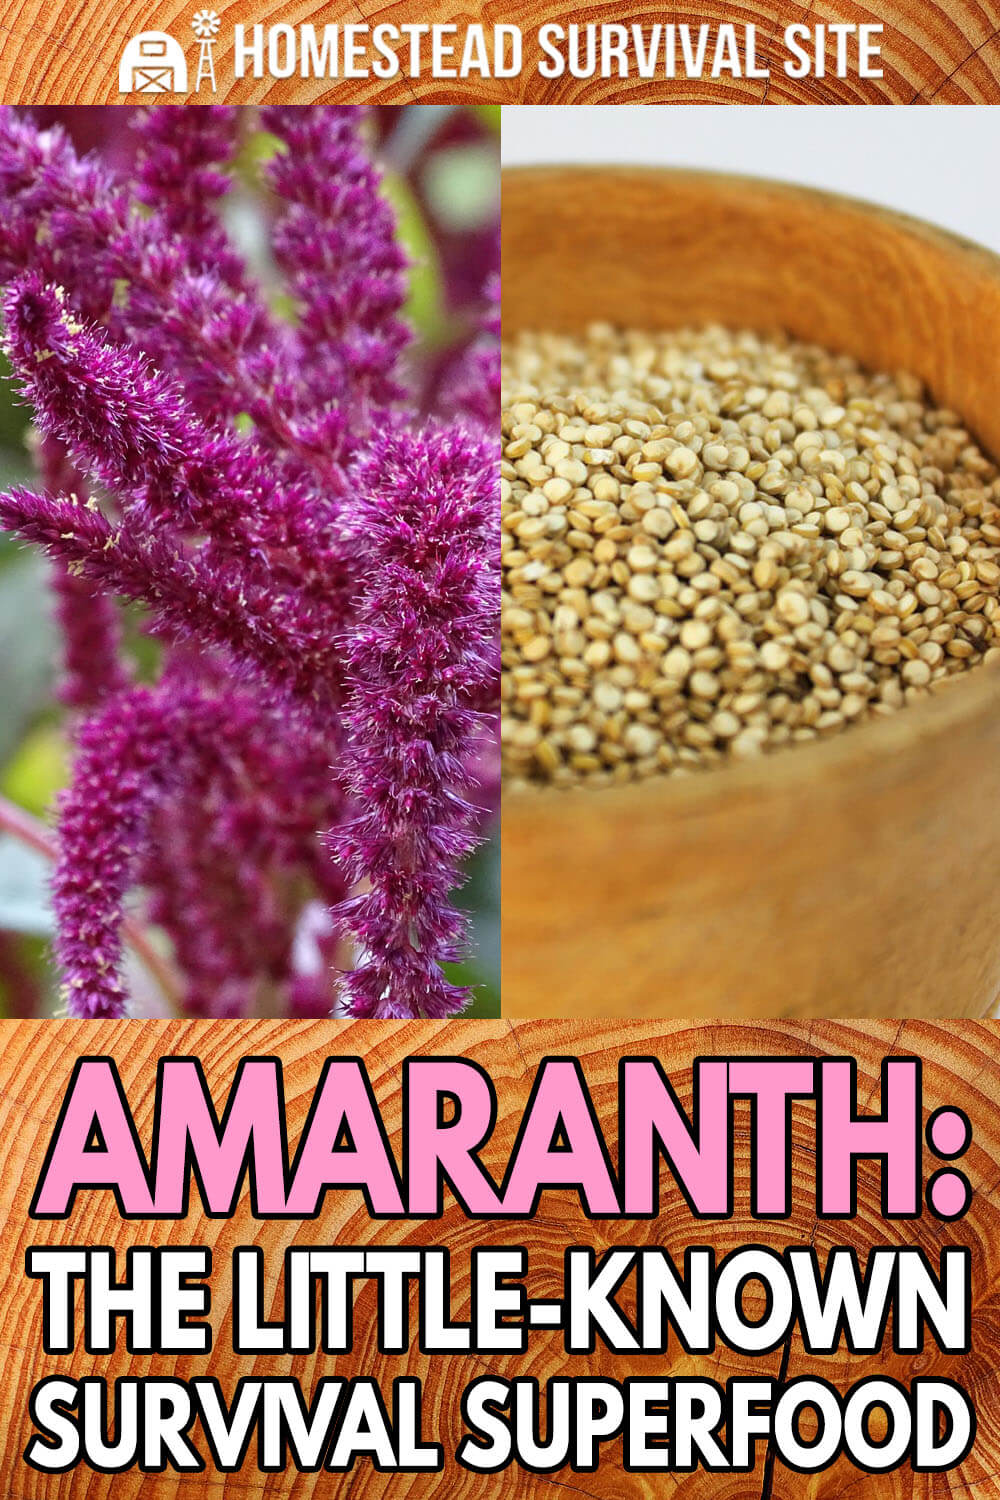 Amaranth: The Little-Known Survival Superfood